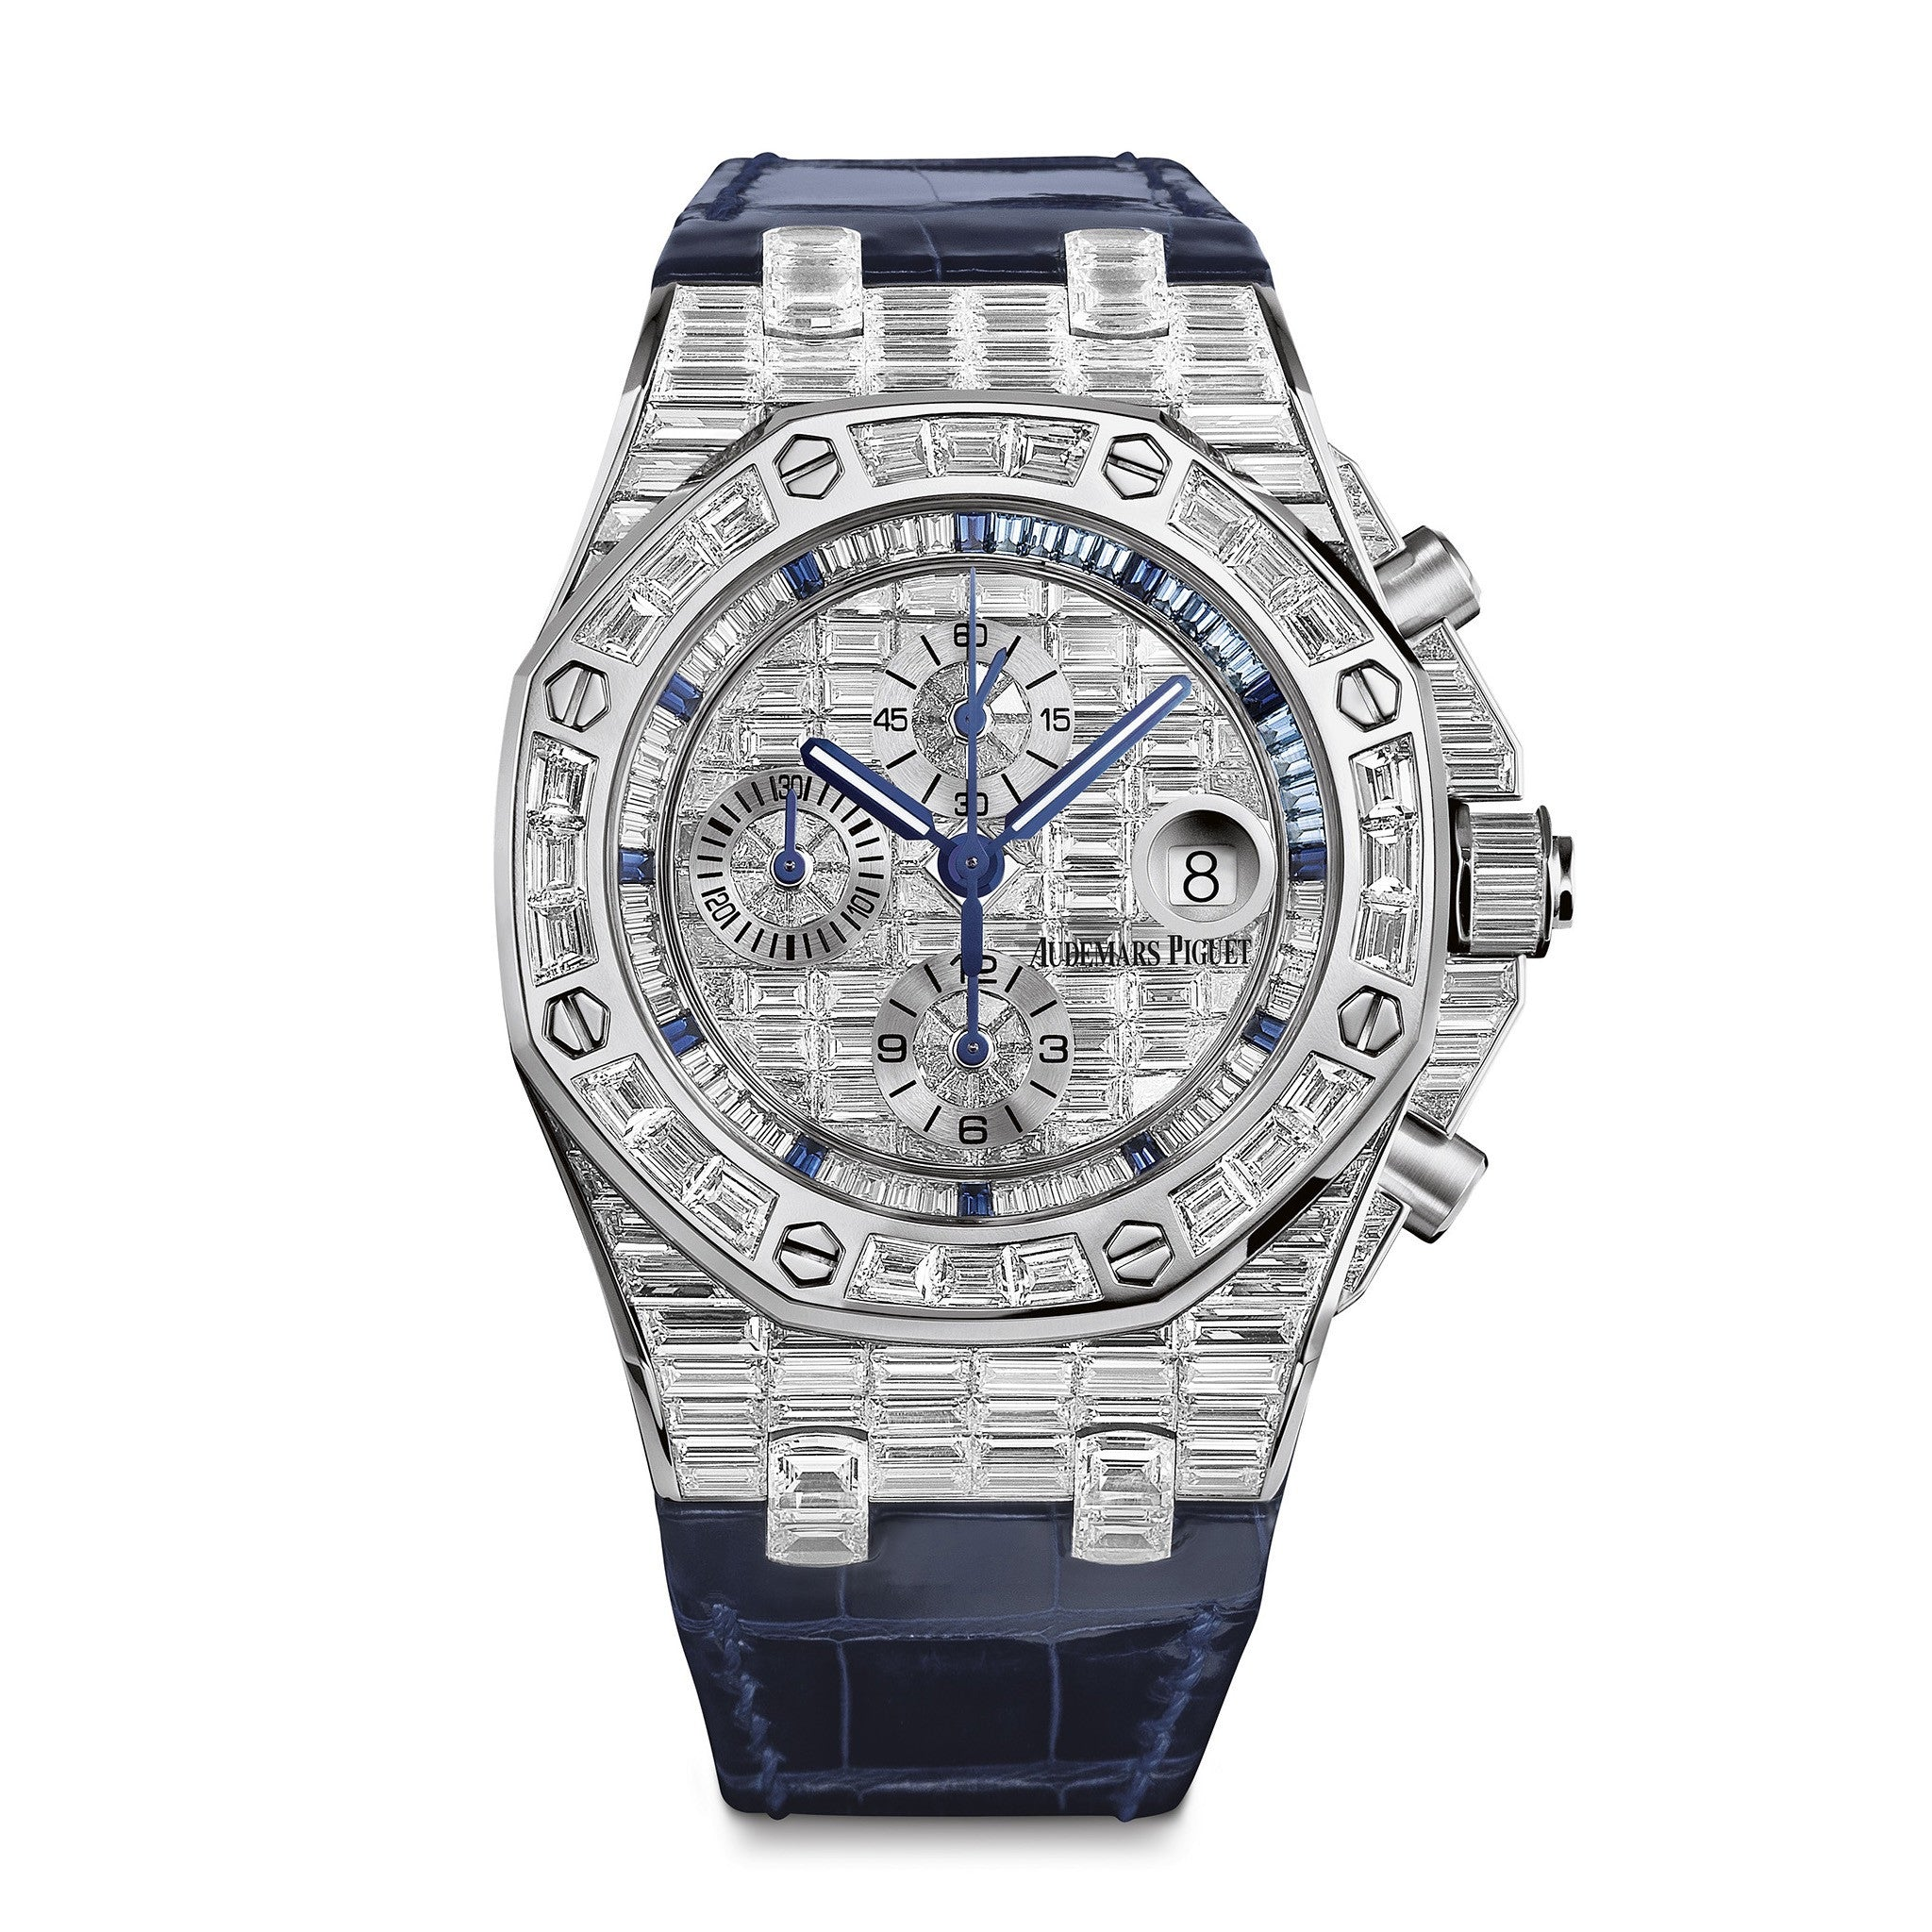 Royal Oak Offshore Chronograph 26473BC.ZZ.D023CR.01 - Audemars Piguet